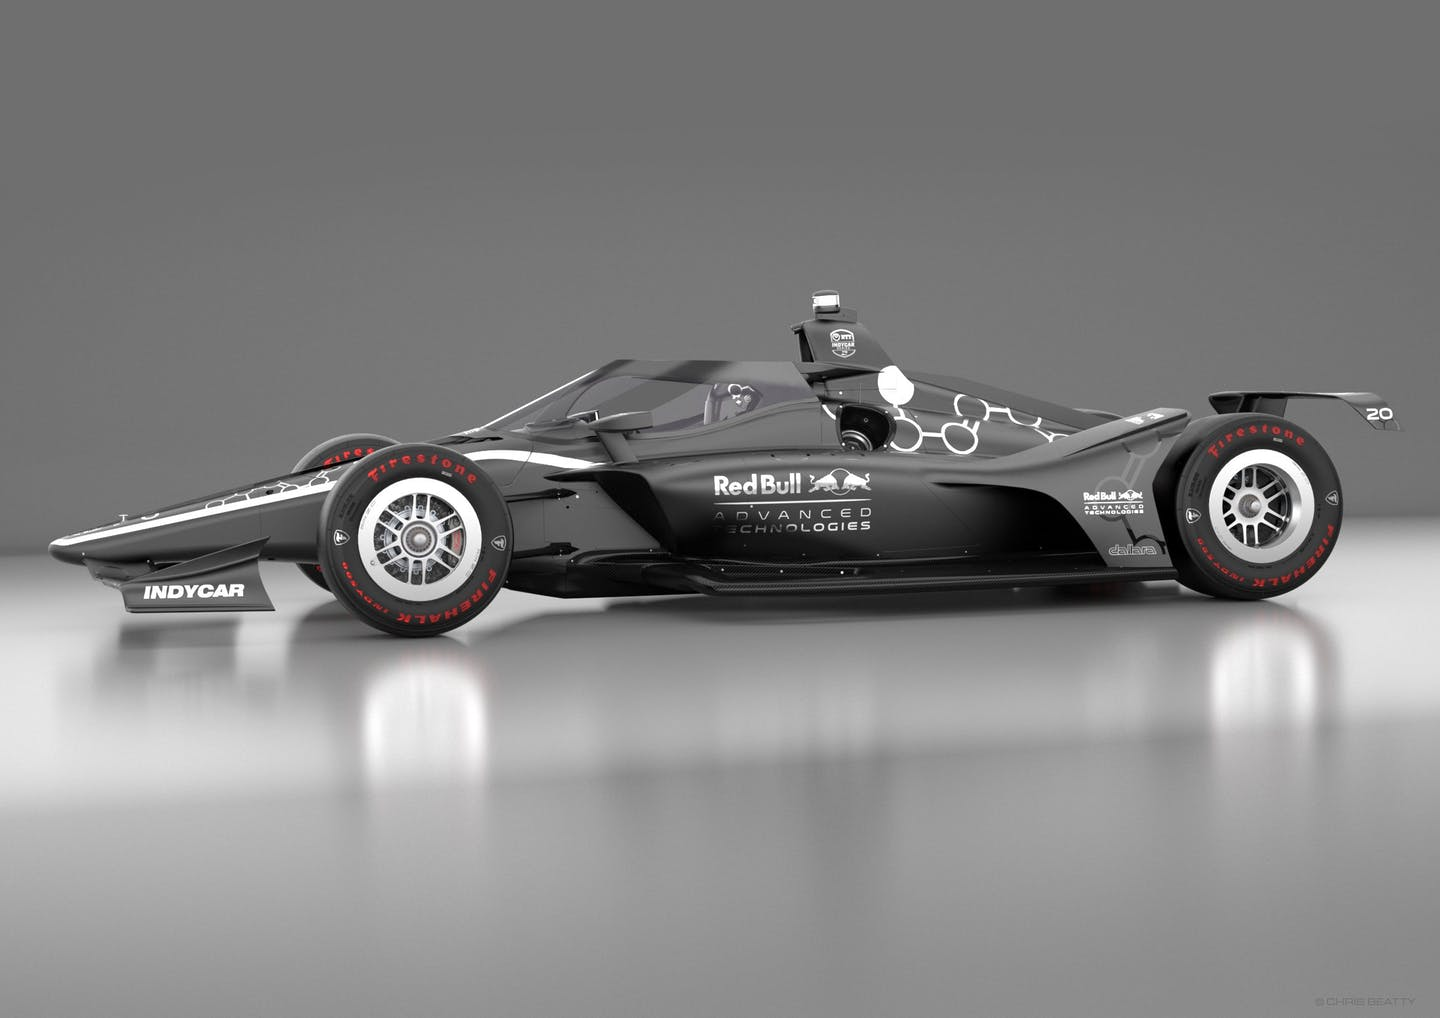 Aeroscreen Updates + Is This the Most Competitive Era in INDYCAR Racing History?